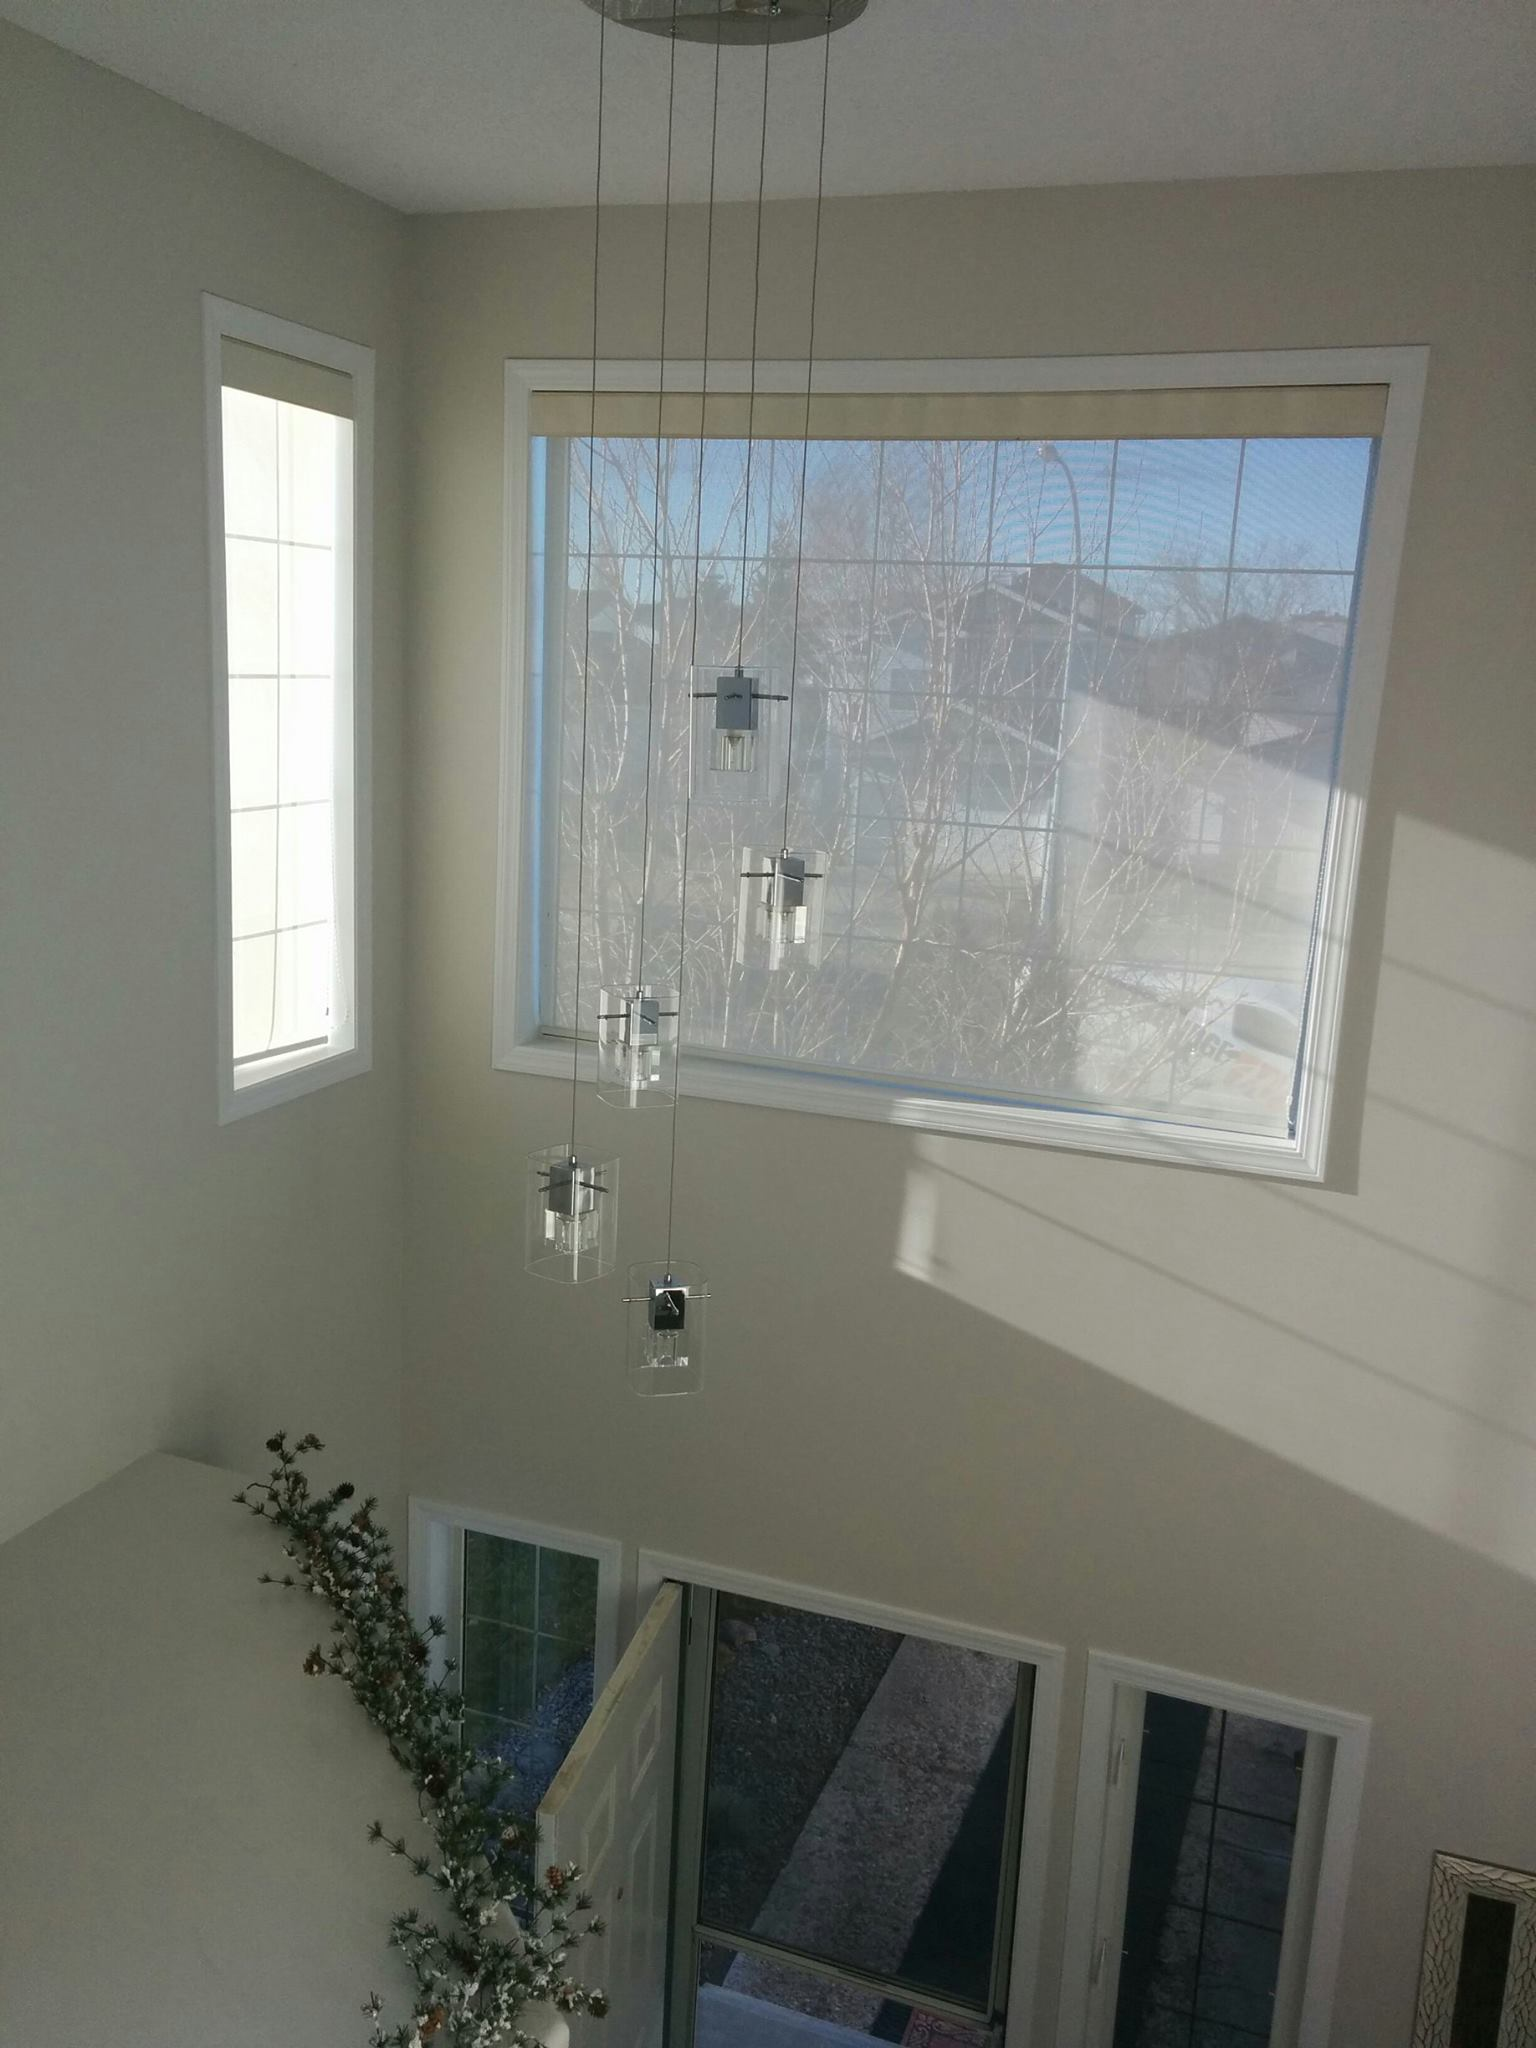 the hard to reach windows were dressed up with new casing and a new chandalier was installed over the front entrance.